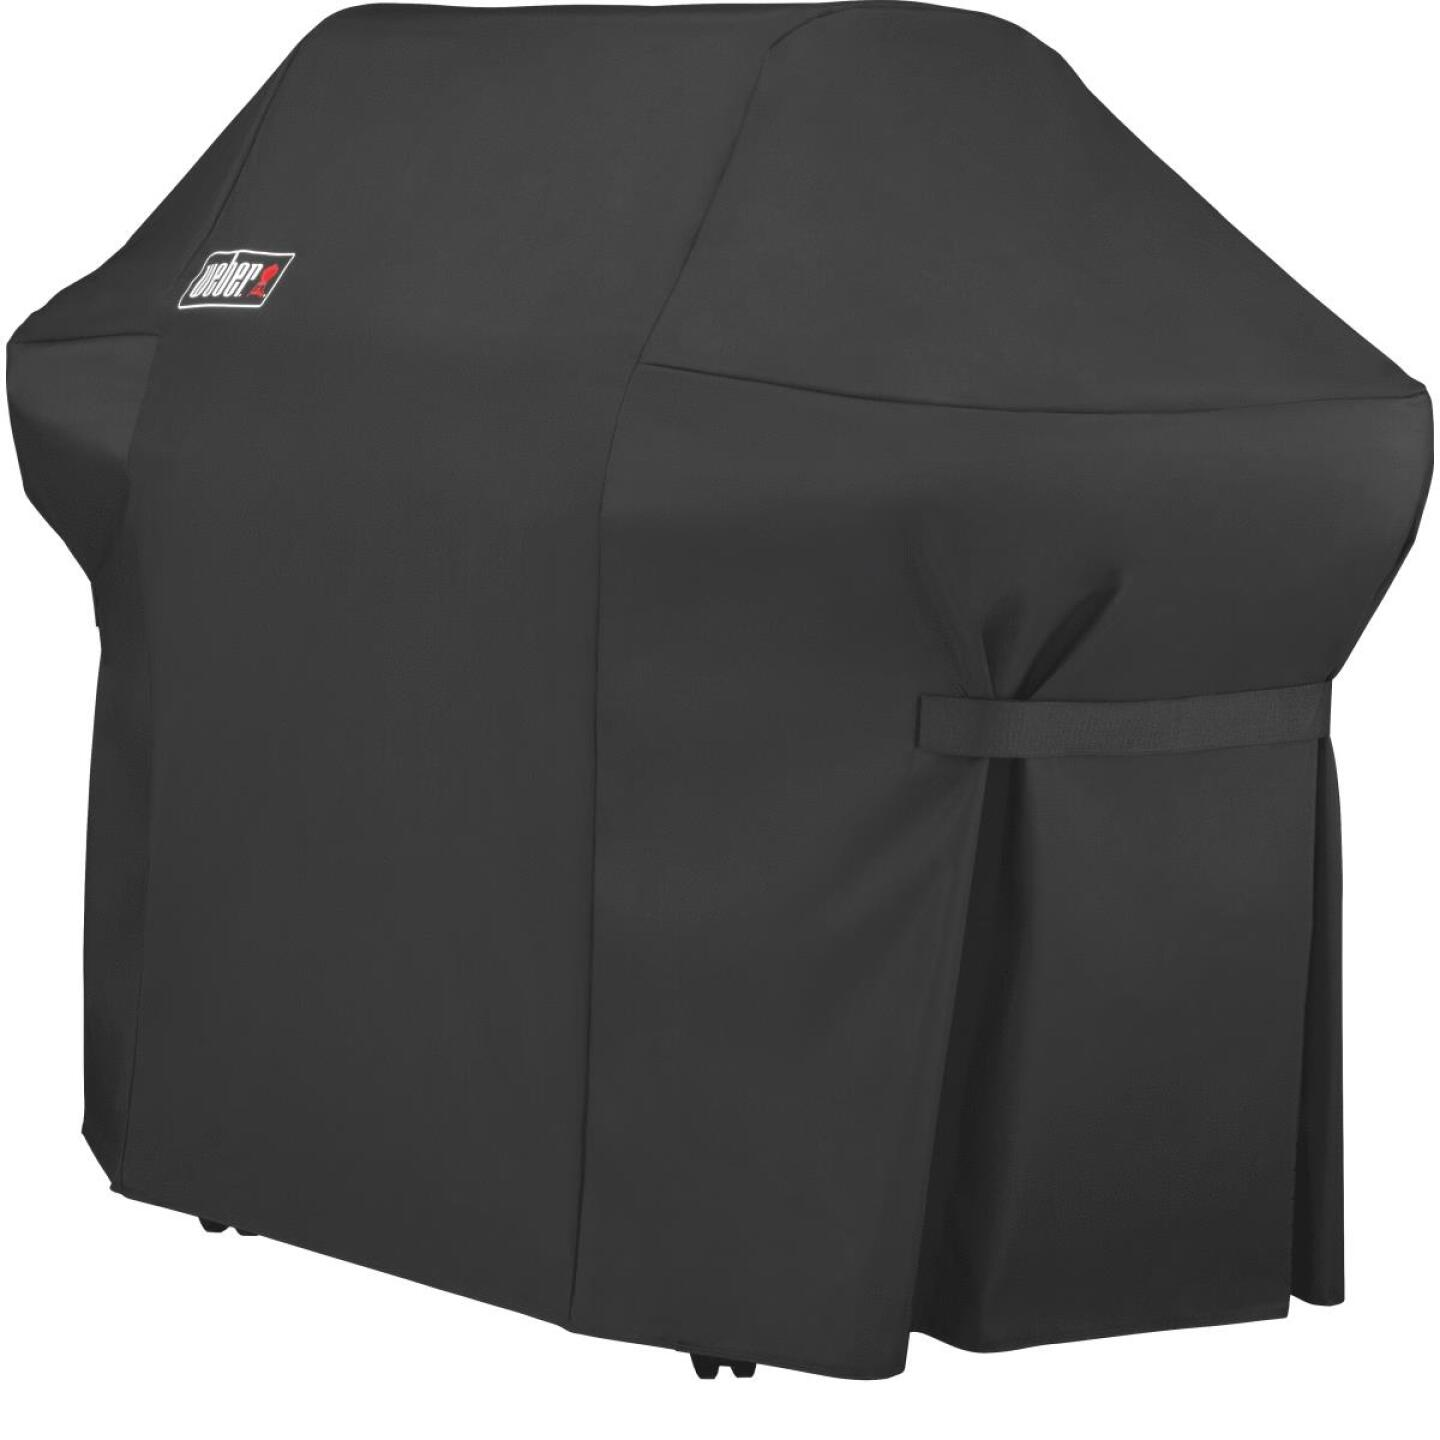 Weber Summit 400S Premium 67 In. Black Polyester Grill Cover Image 4